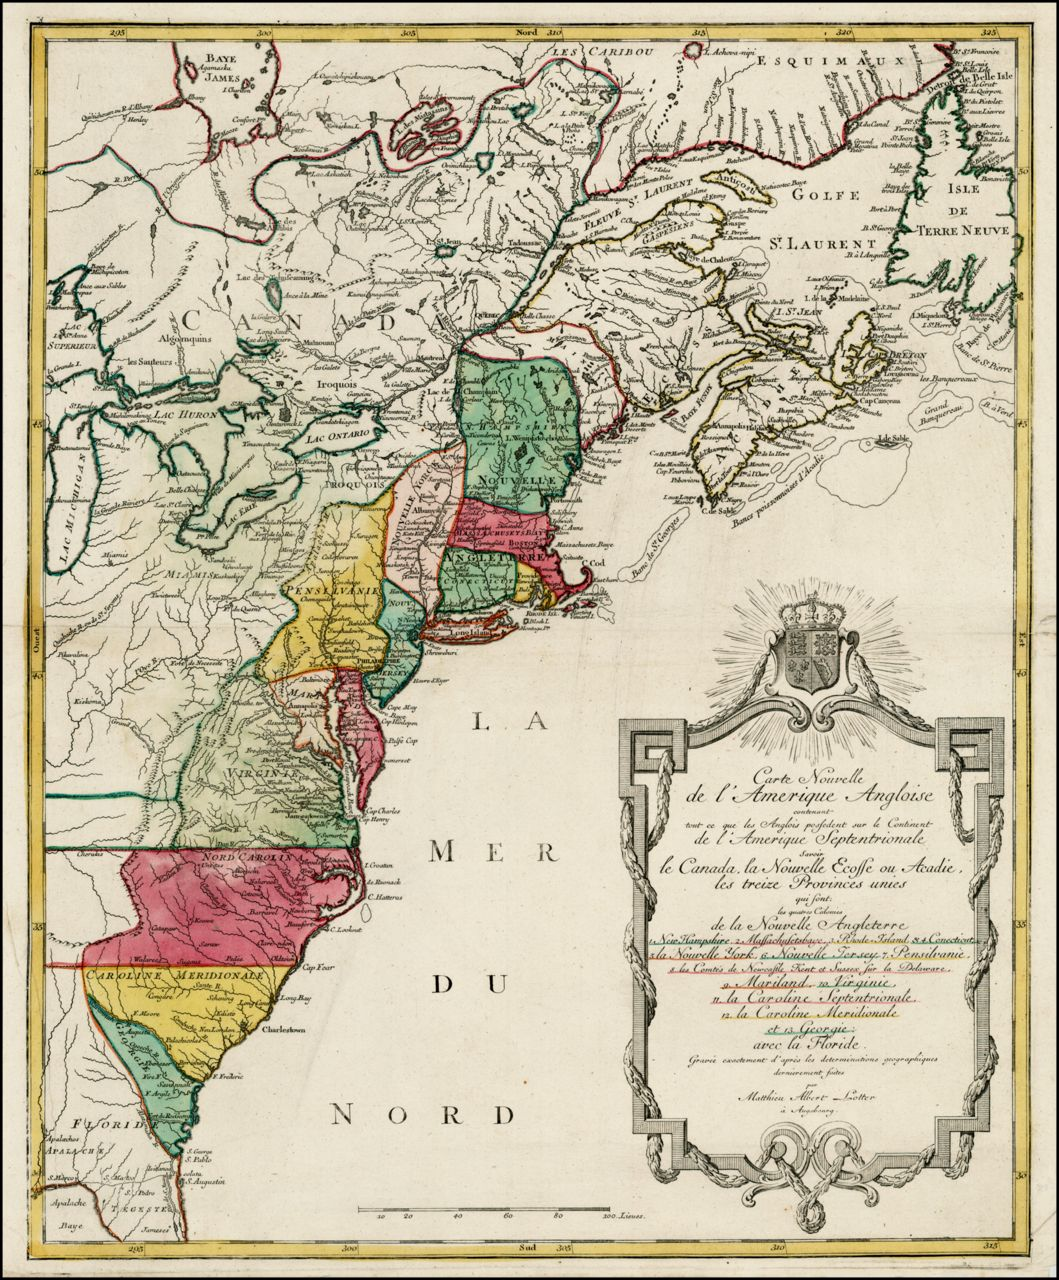 Original Thirteen Colonies Maps Antique Maps Map Historical Maps - Us-map-with-13-colonies